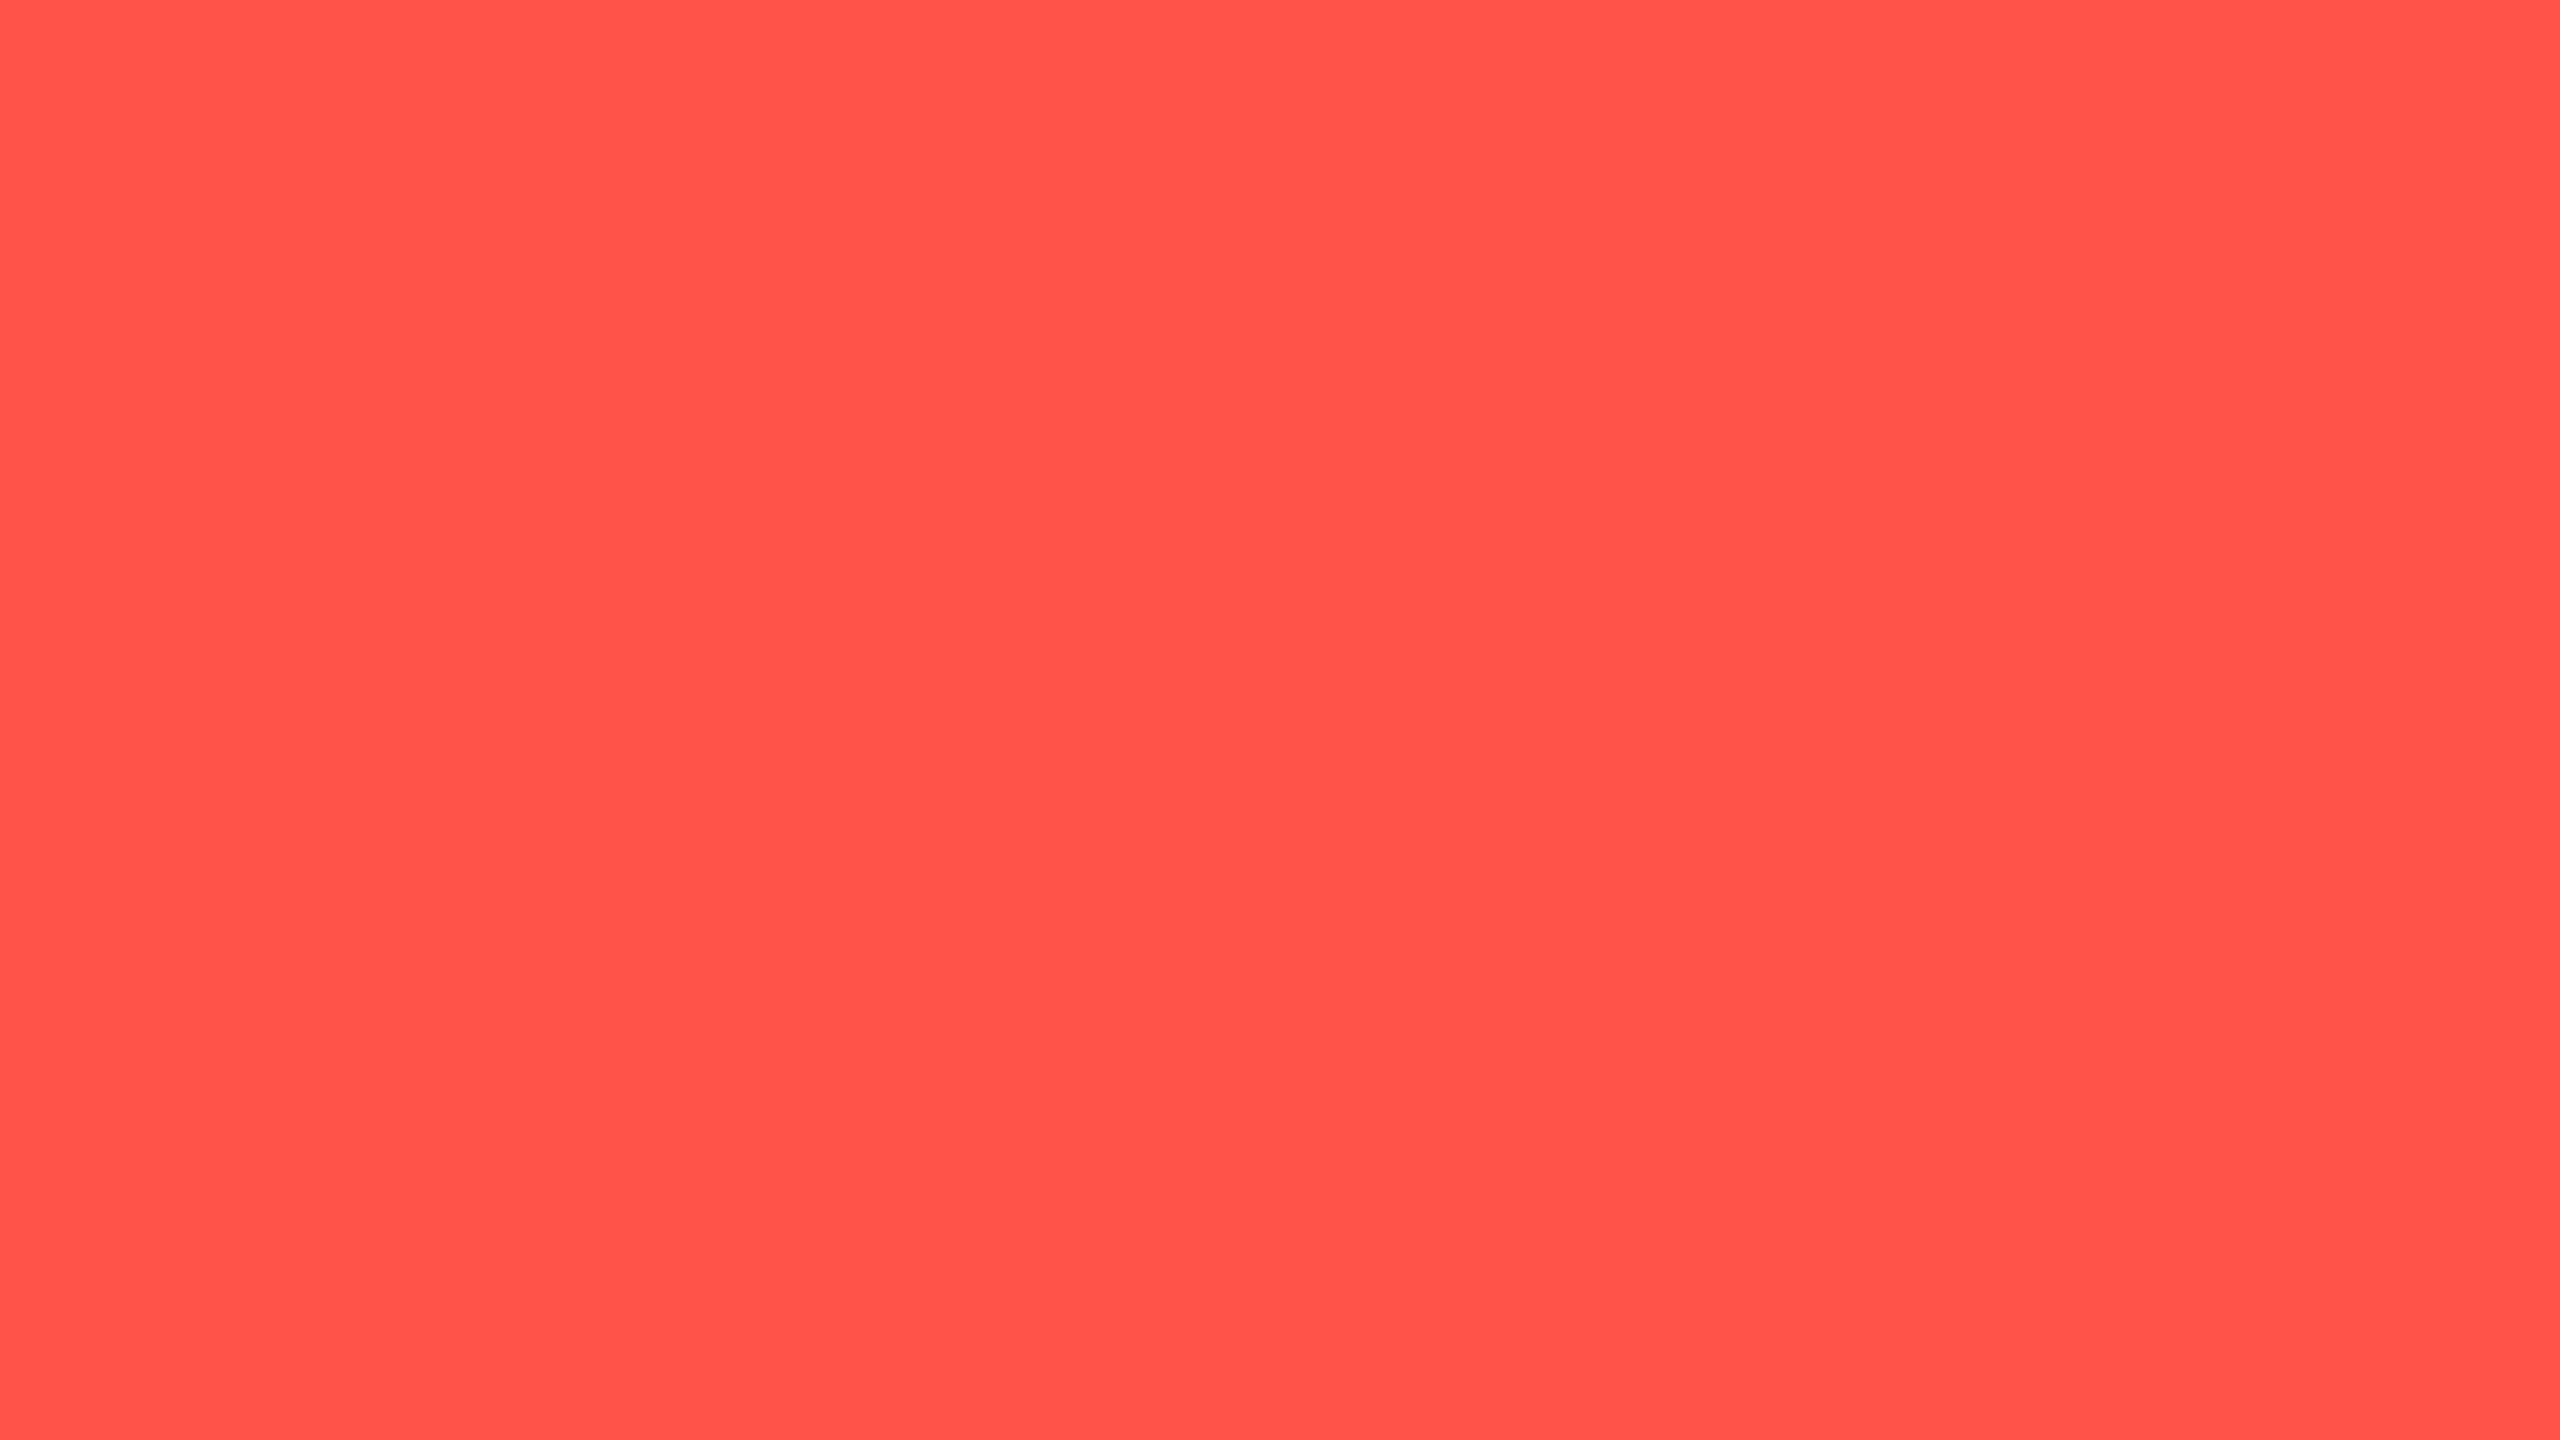 2560x1440 Red-orange Solid Color Background